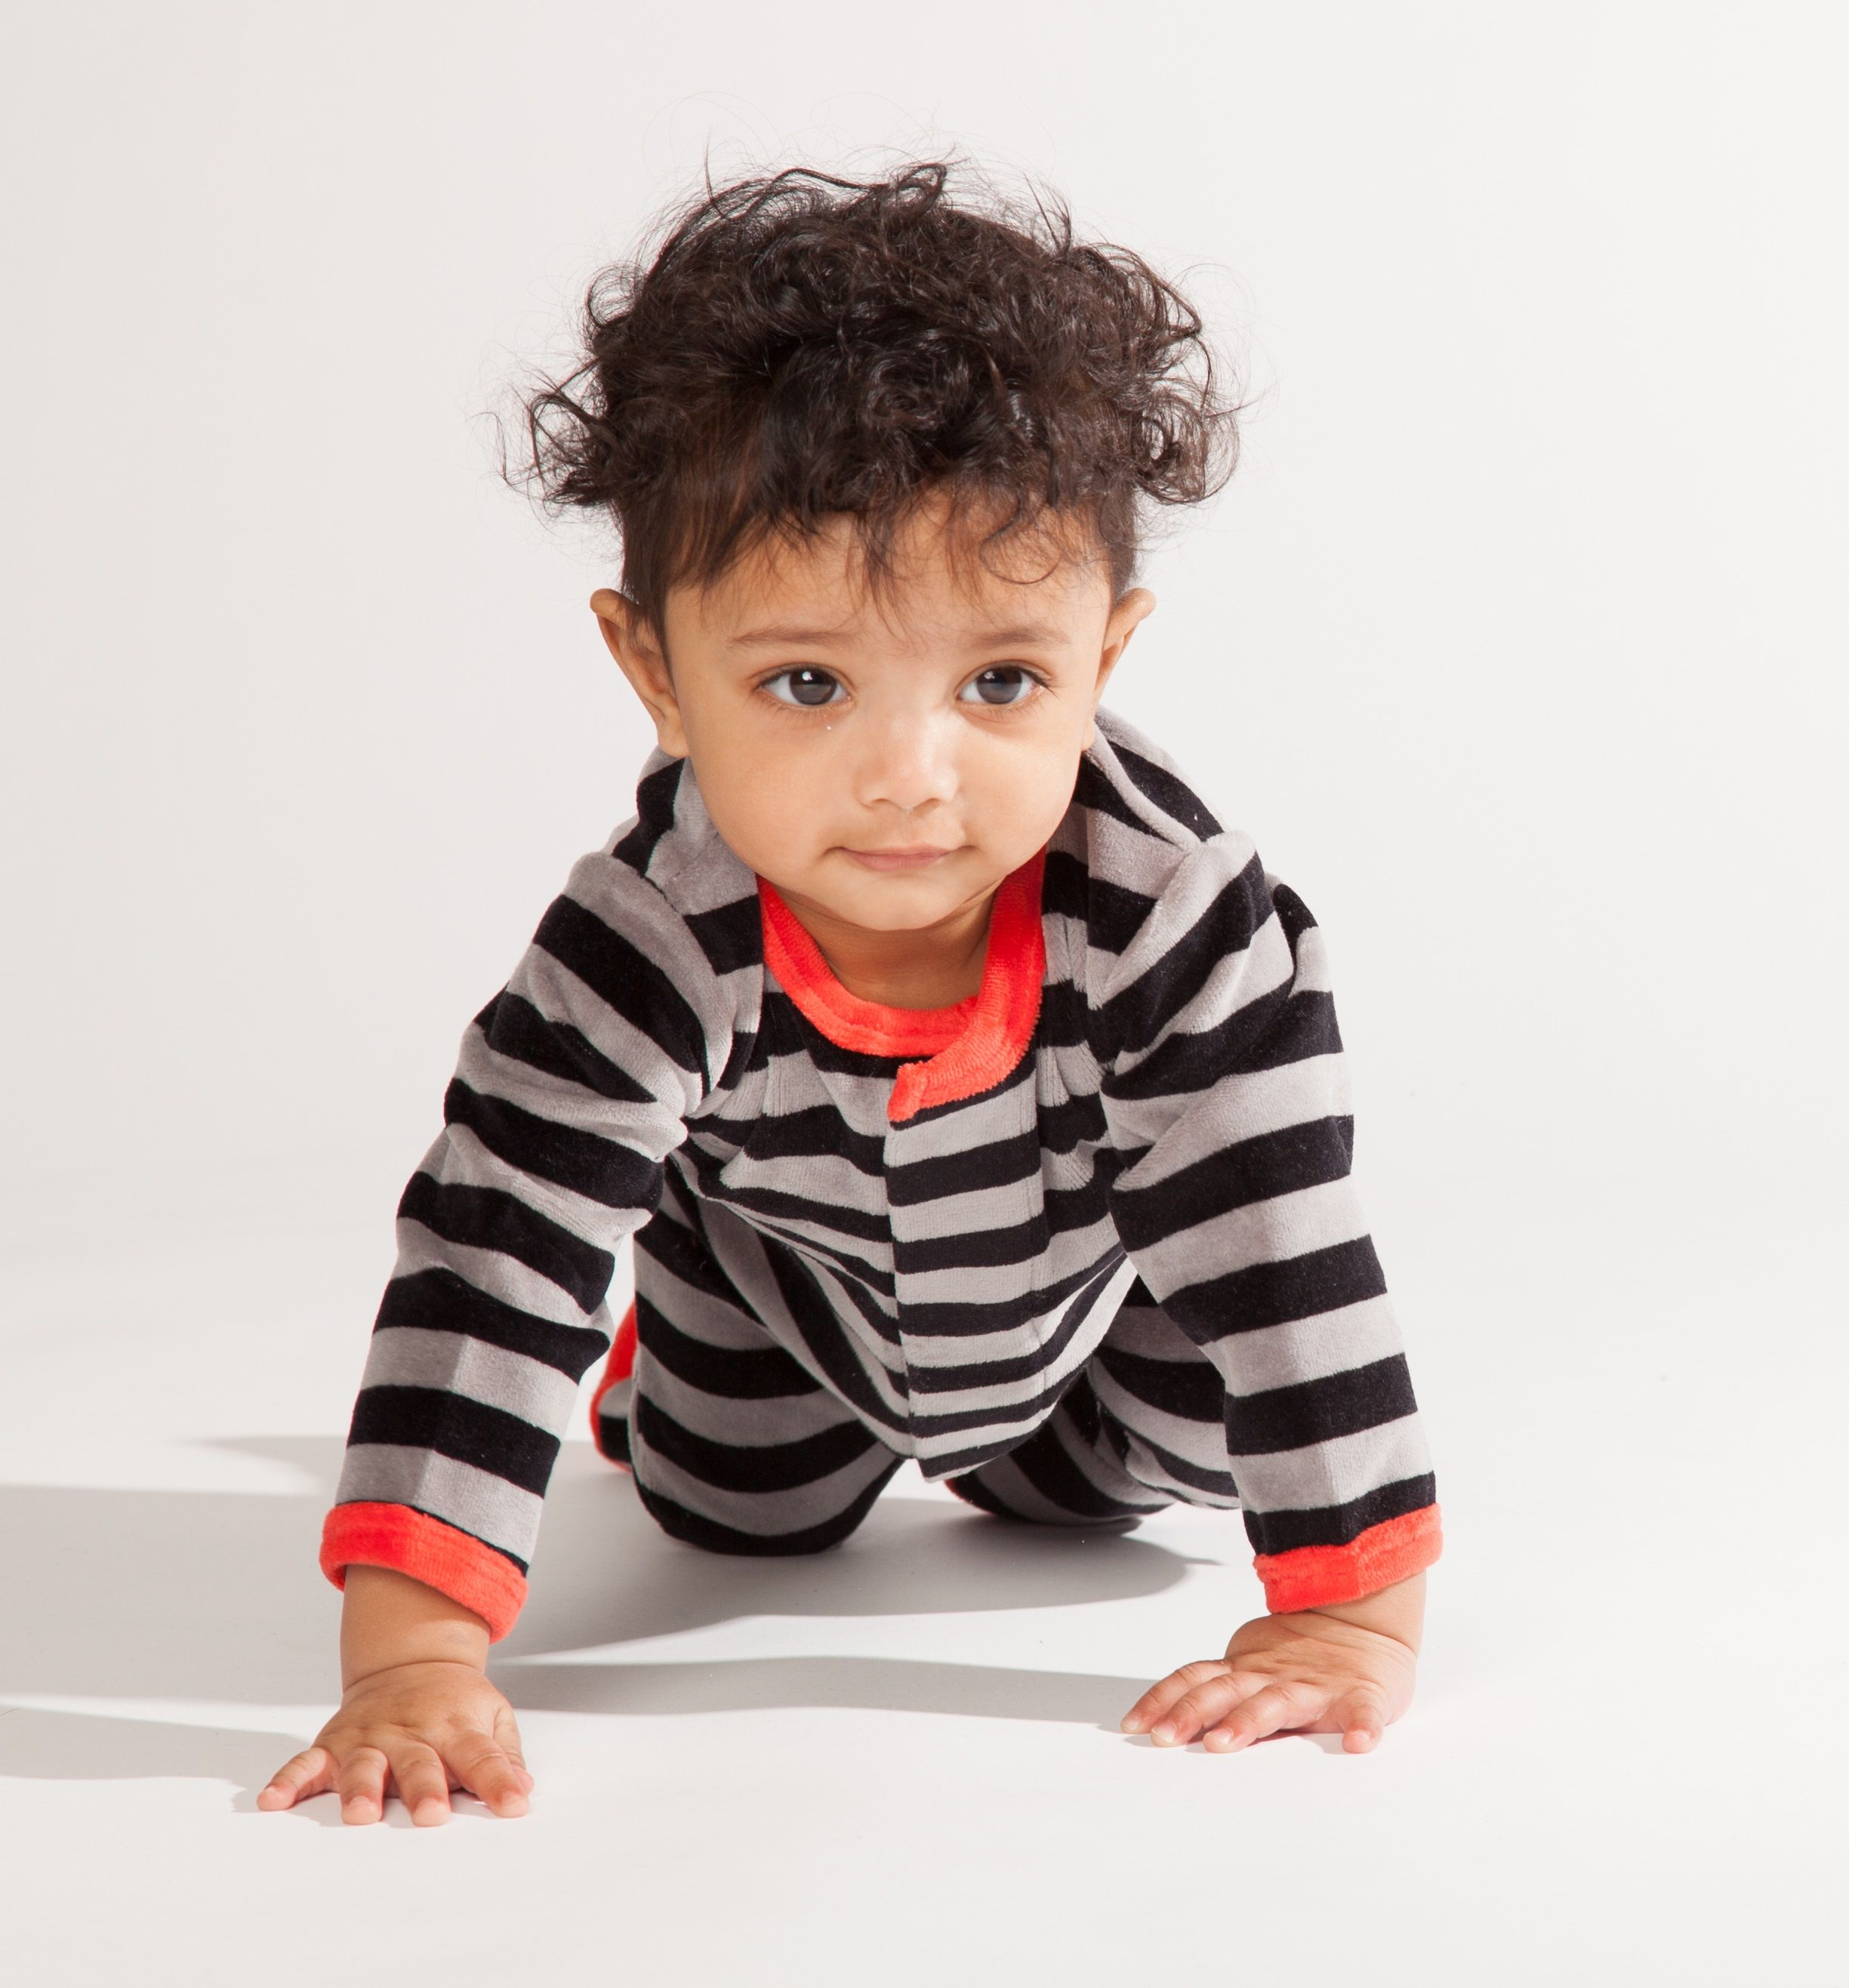 This Velour footie in Charcoal and Slate is comfy for crawling! Go to magnificentbaby.com to find this item on sale!